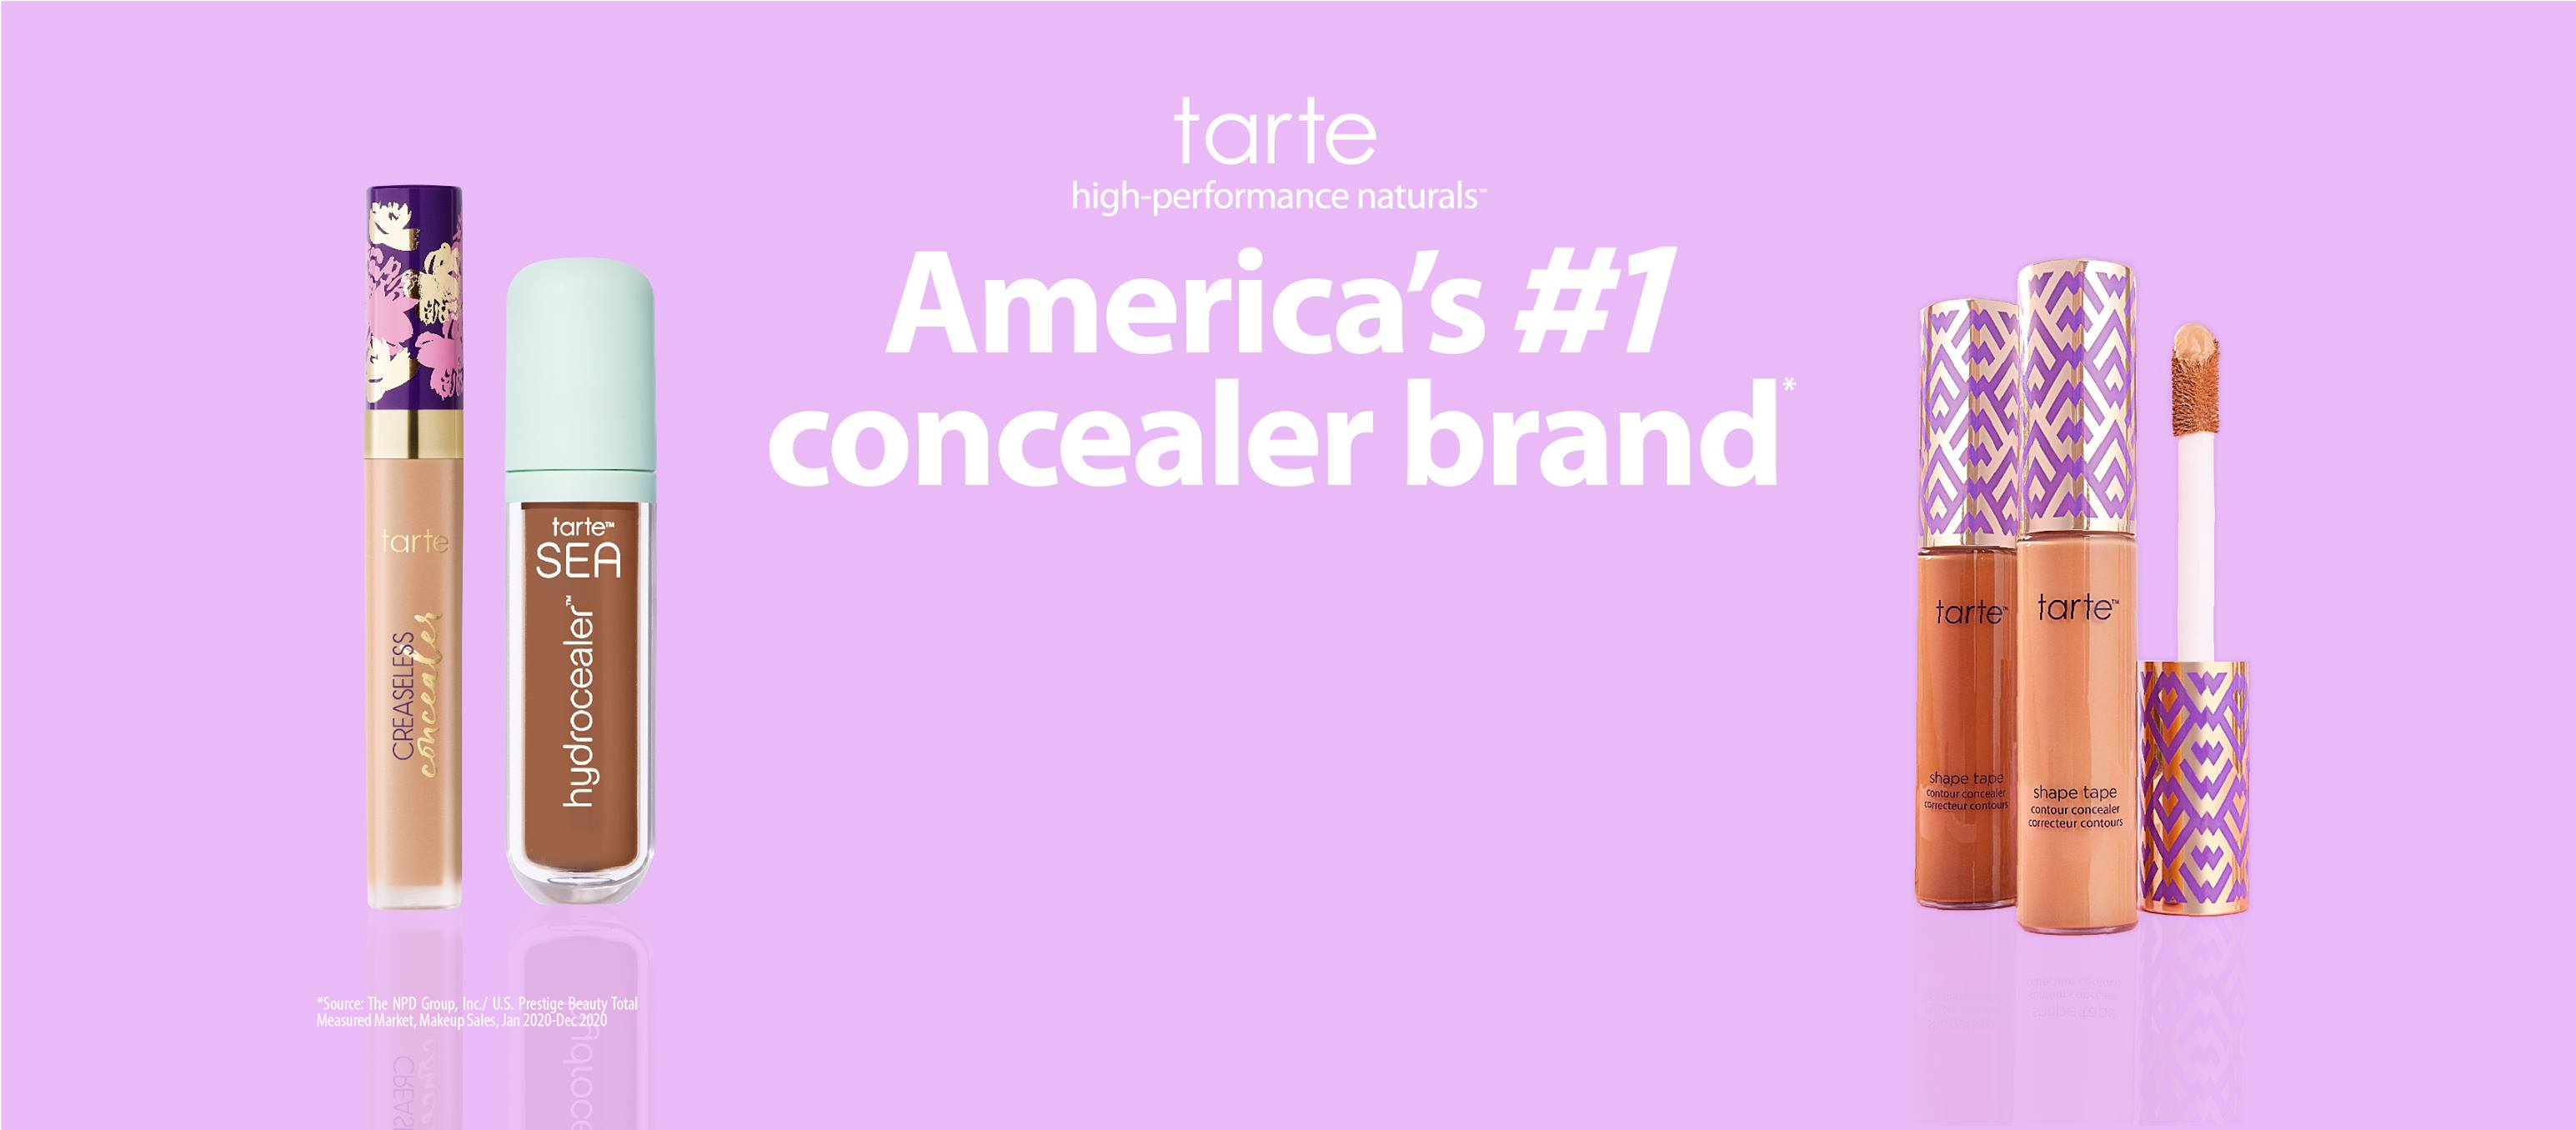 About tarte Homepage